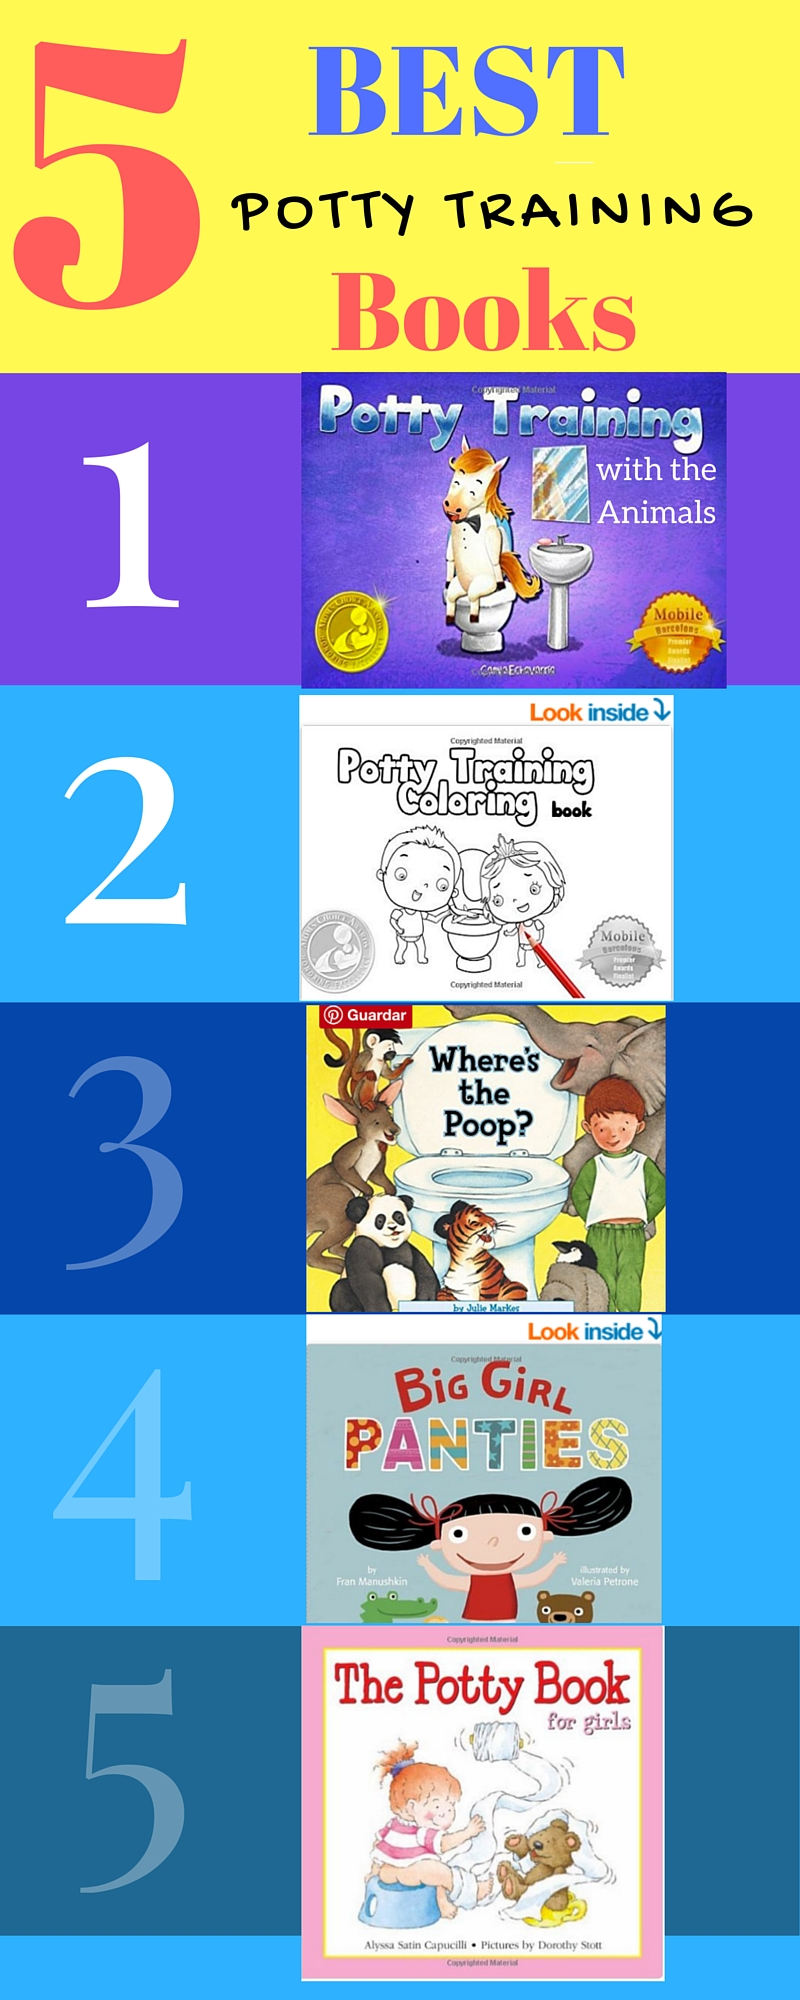 5 Top Potty Training Books (Best Potty training Books)